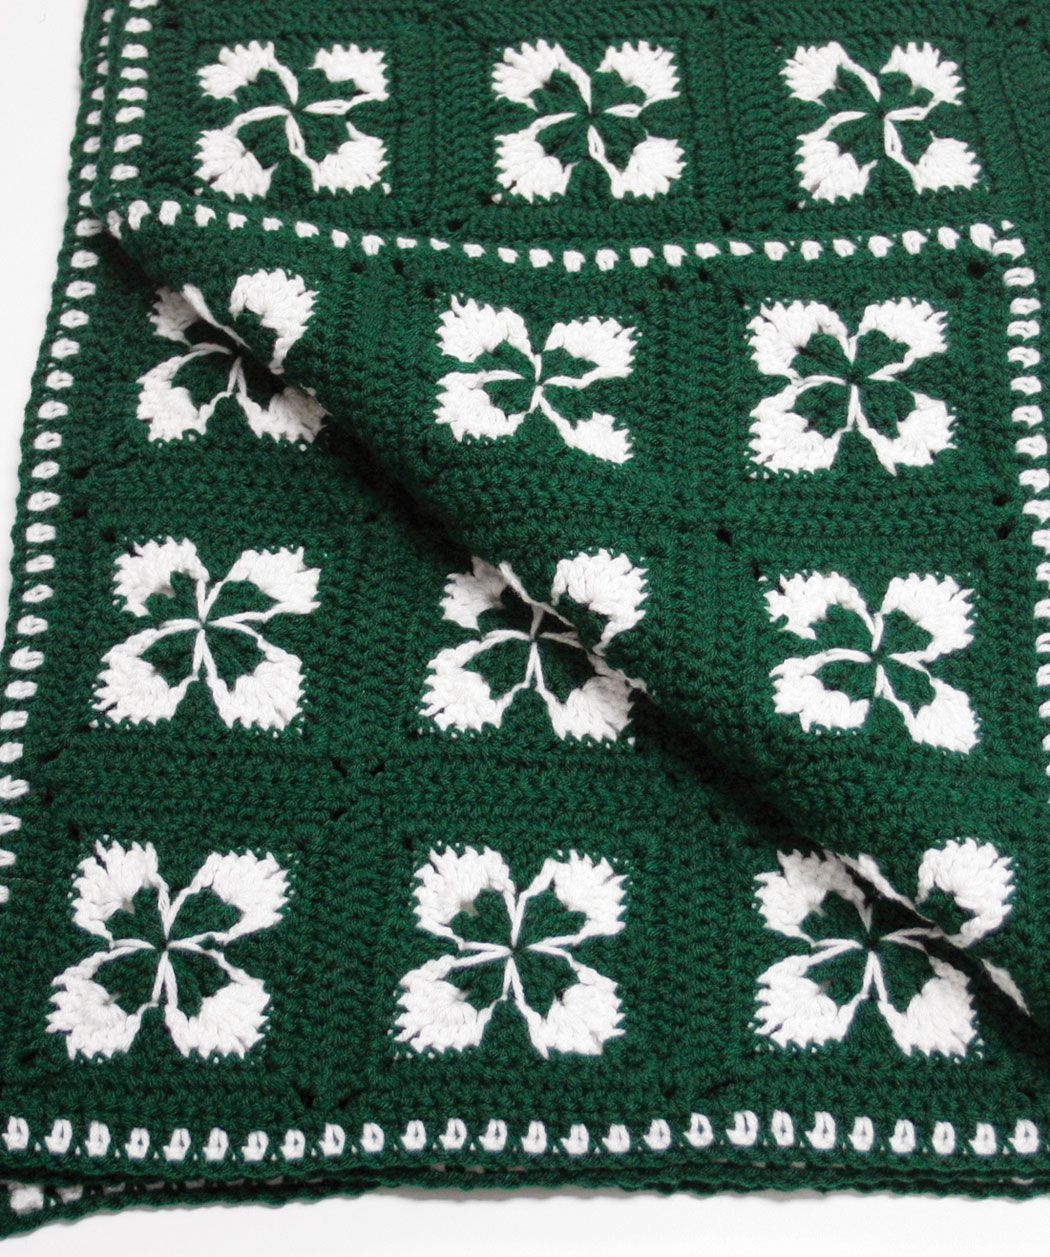 Crochet Shamrock Afghan - Free Download Printable Instructions from ...